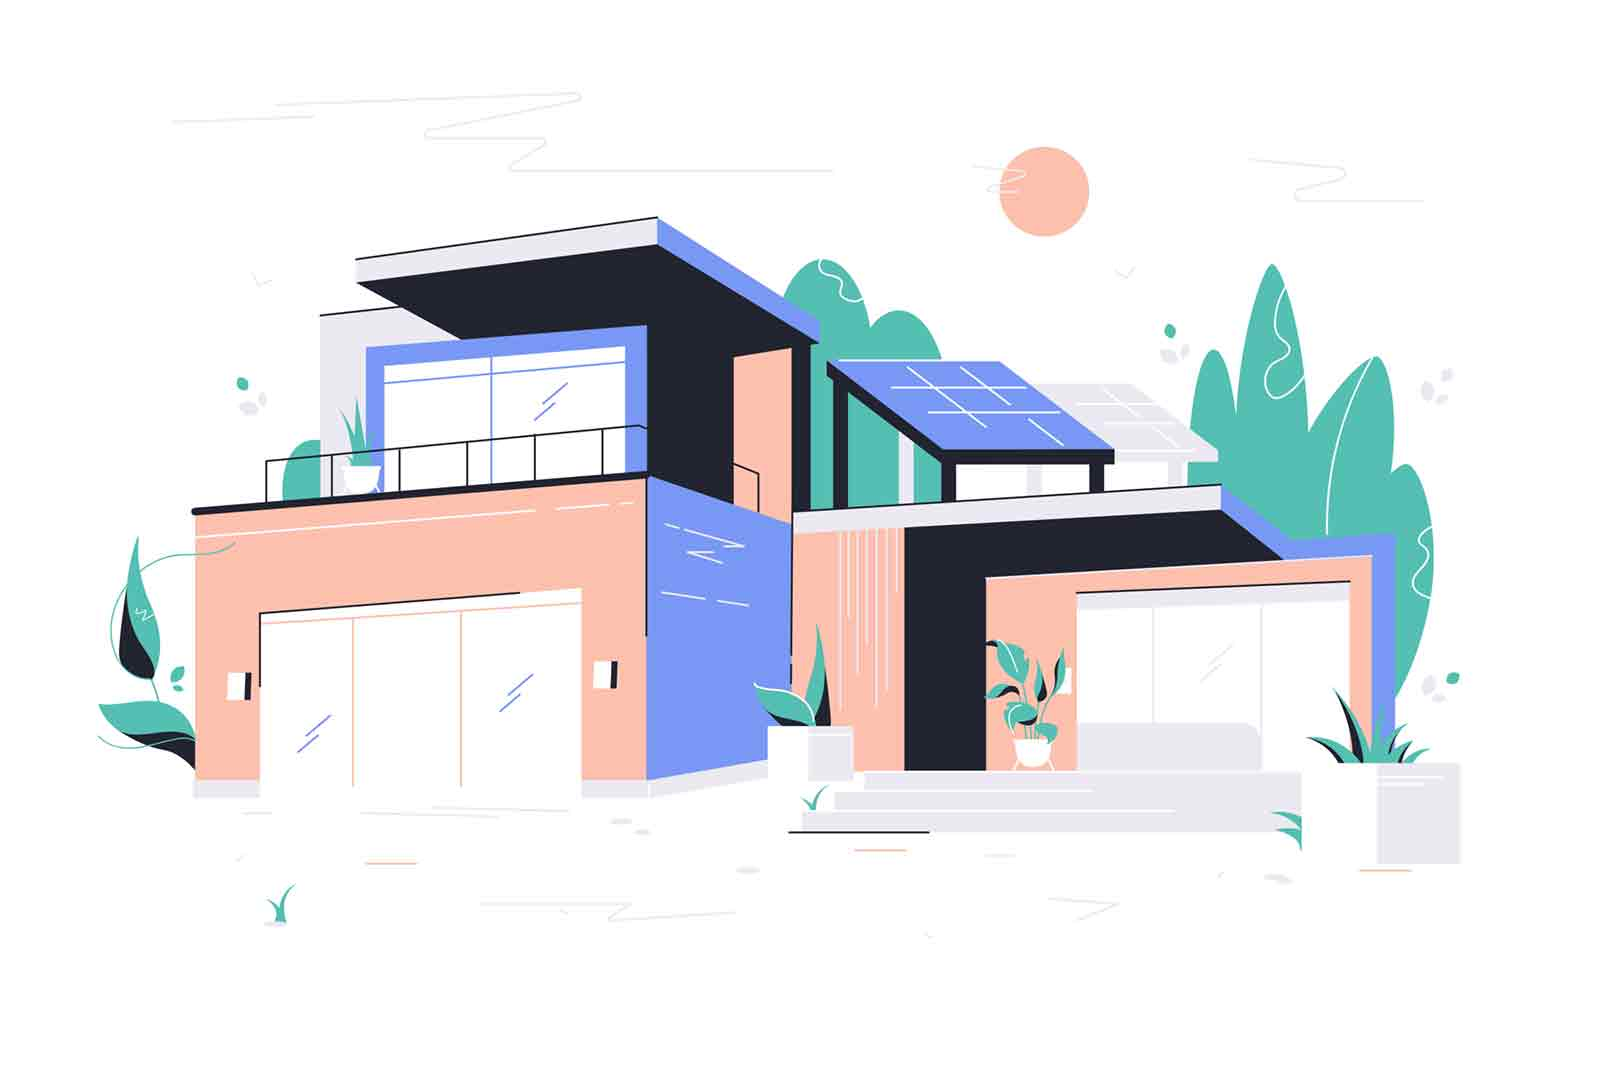 Modern big house with garage, balcony and roof solar panel. Concept two-storied building with plants around perimeter and glass doors. Vector illustration.